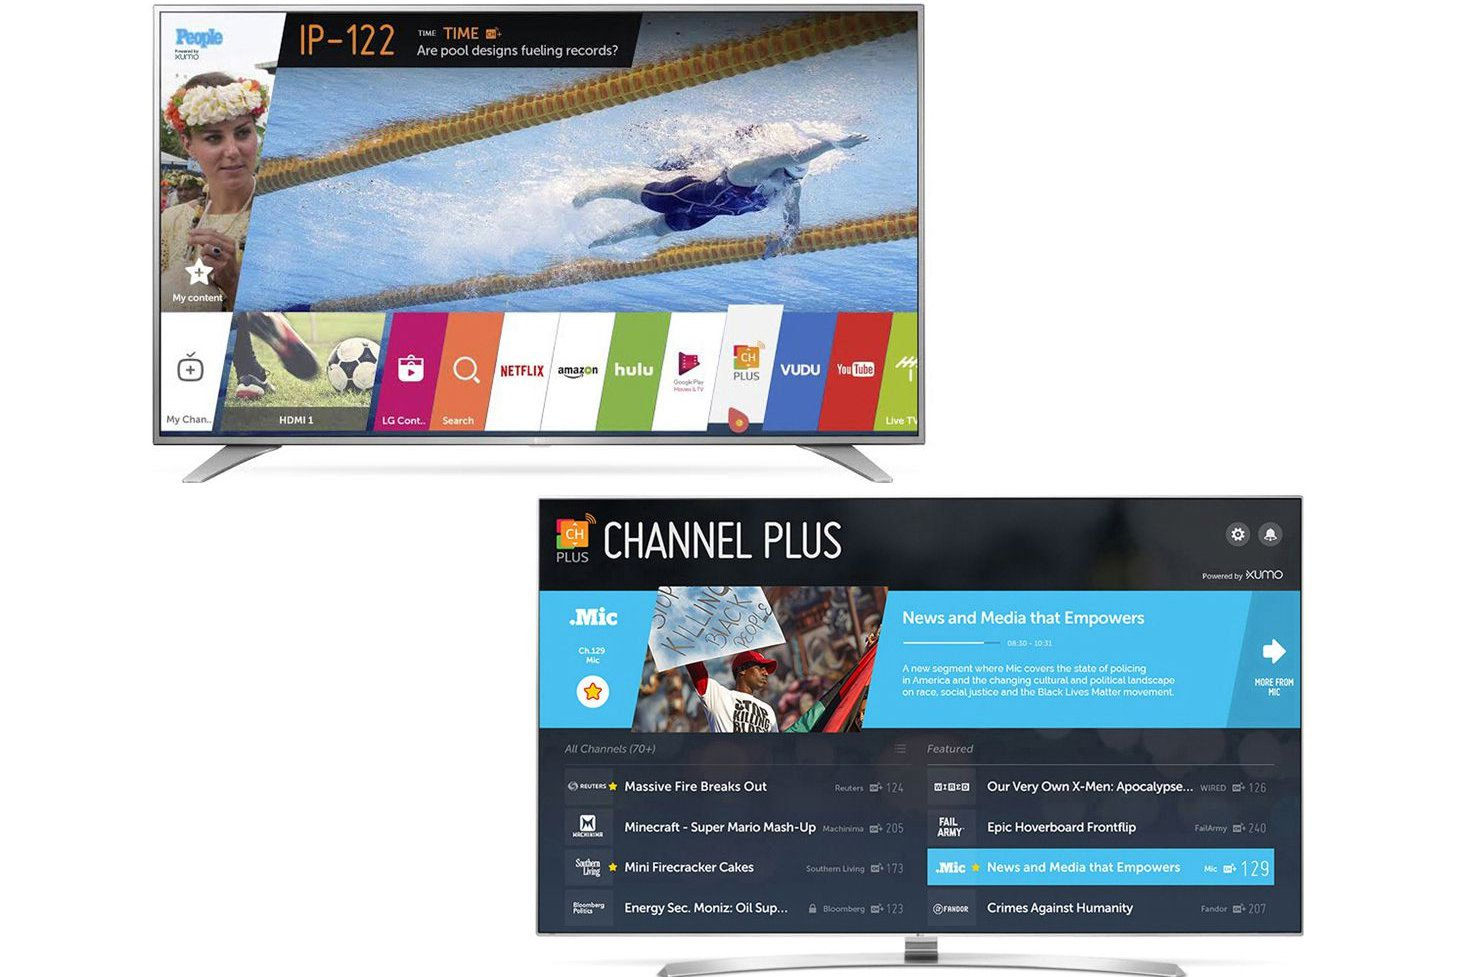 LG Channel Plus - What You Need To Know